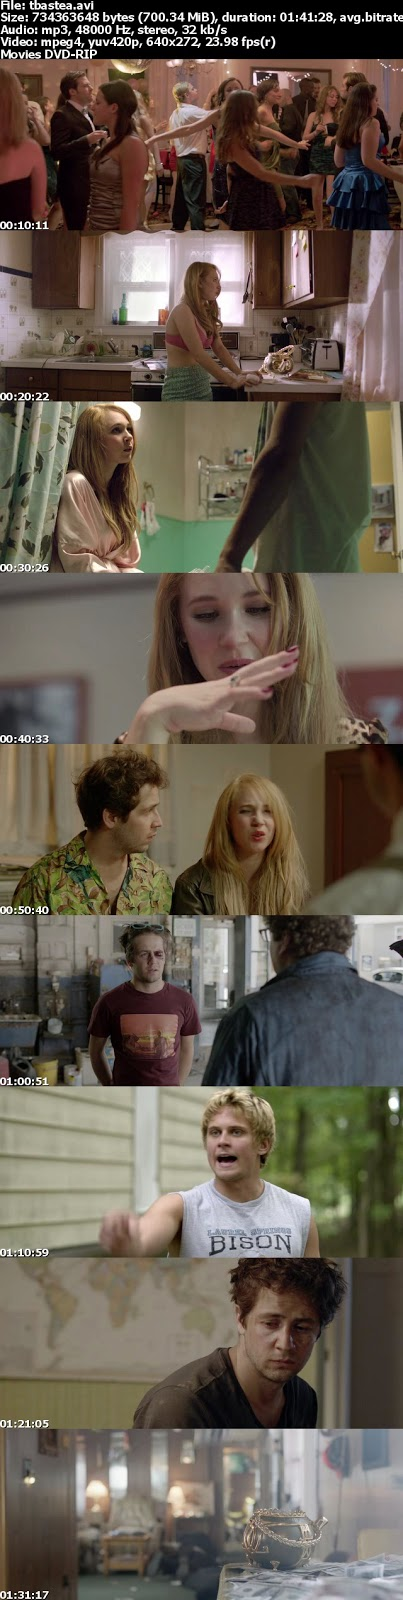 The Brass Teapot (2012) [DvdRip] [Subtitulos Srt] (peliculas hd )